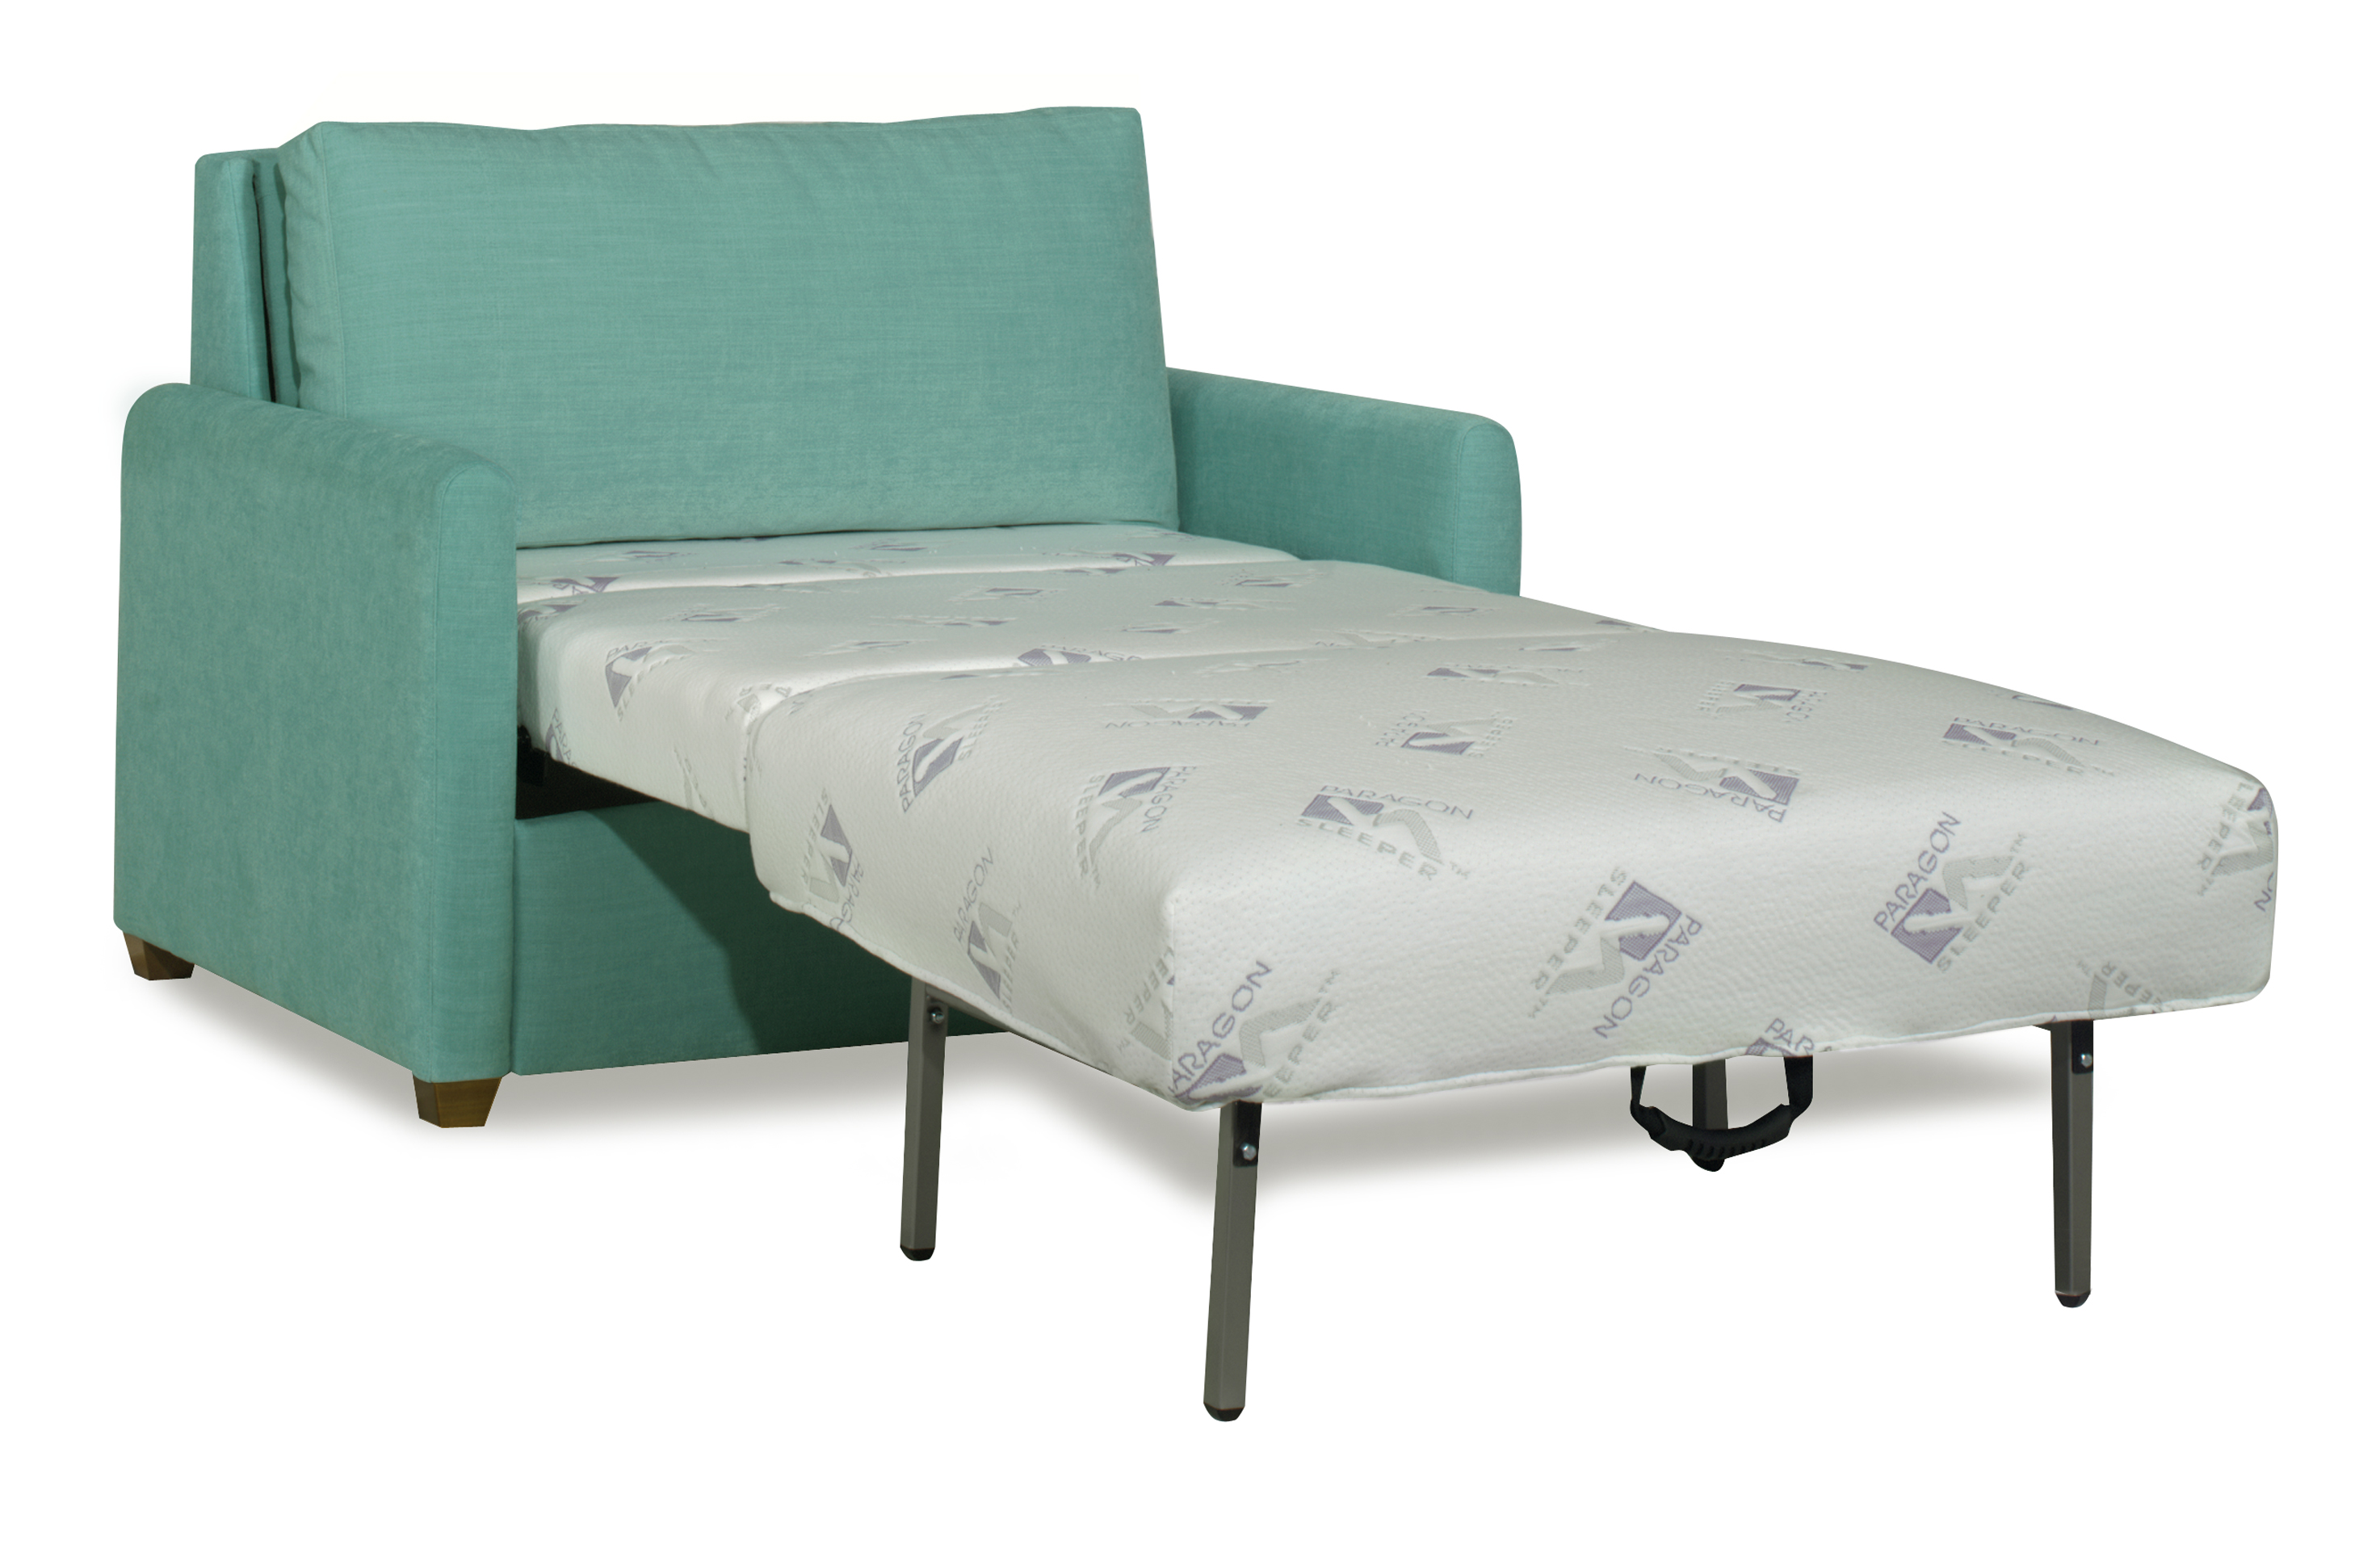 Folding bed chair - Twin Bed Chair Sleeper Design Homesfeed Awesome Chairs That Fold Into Beds